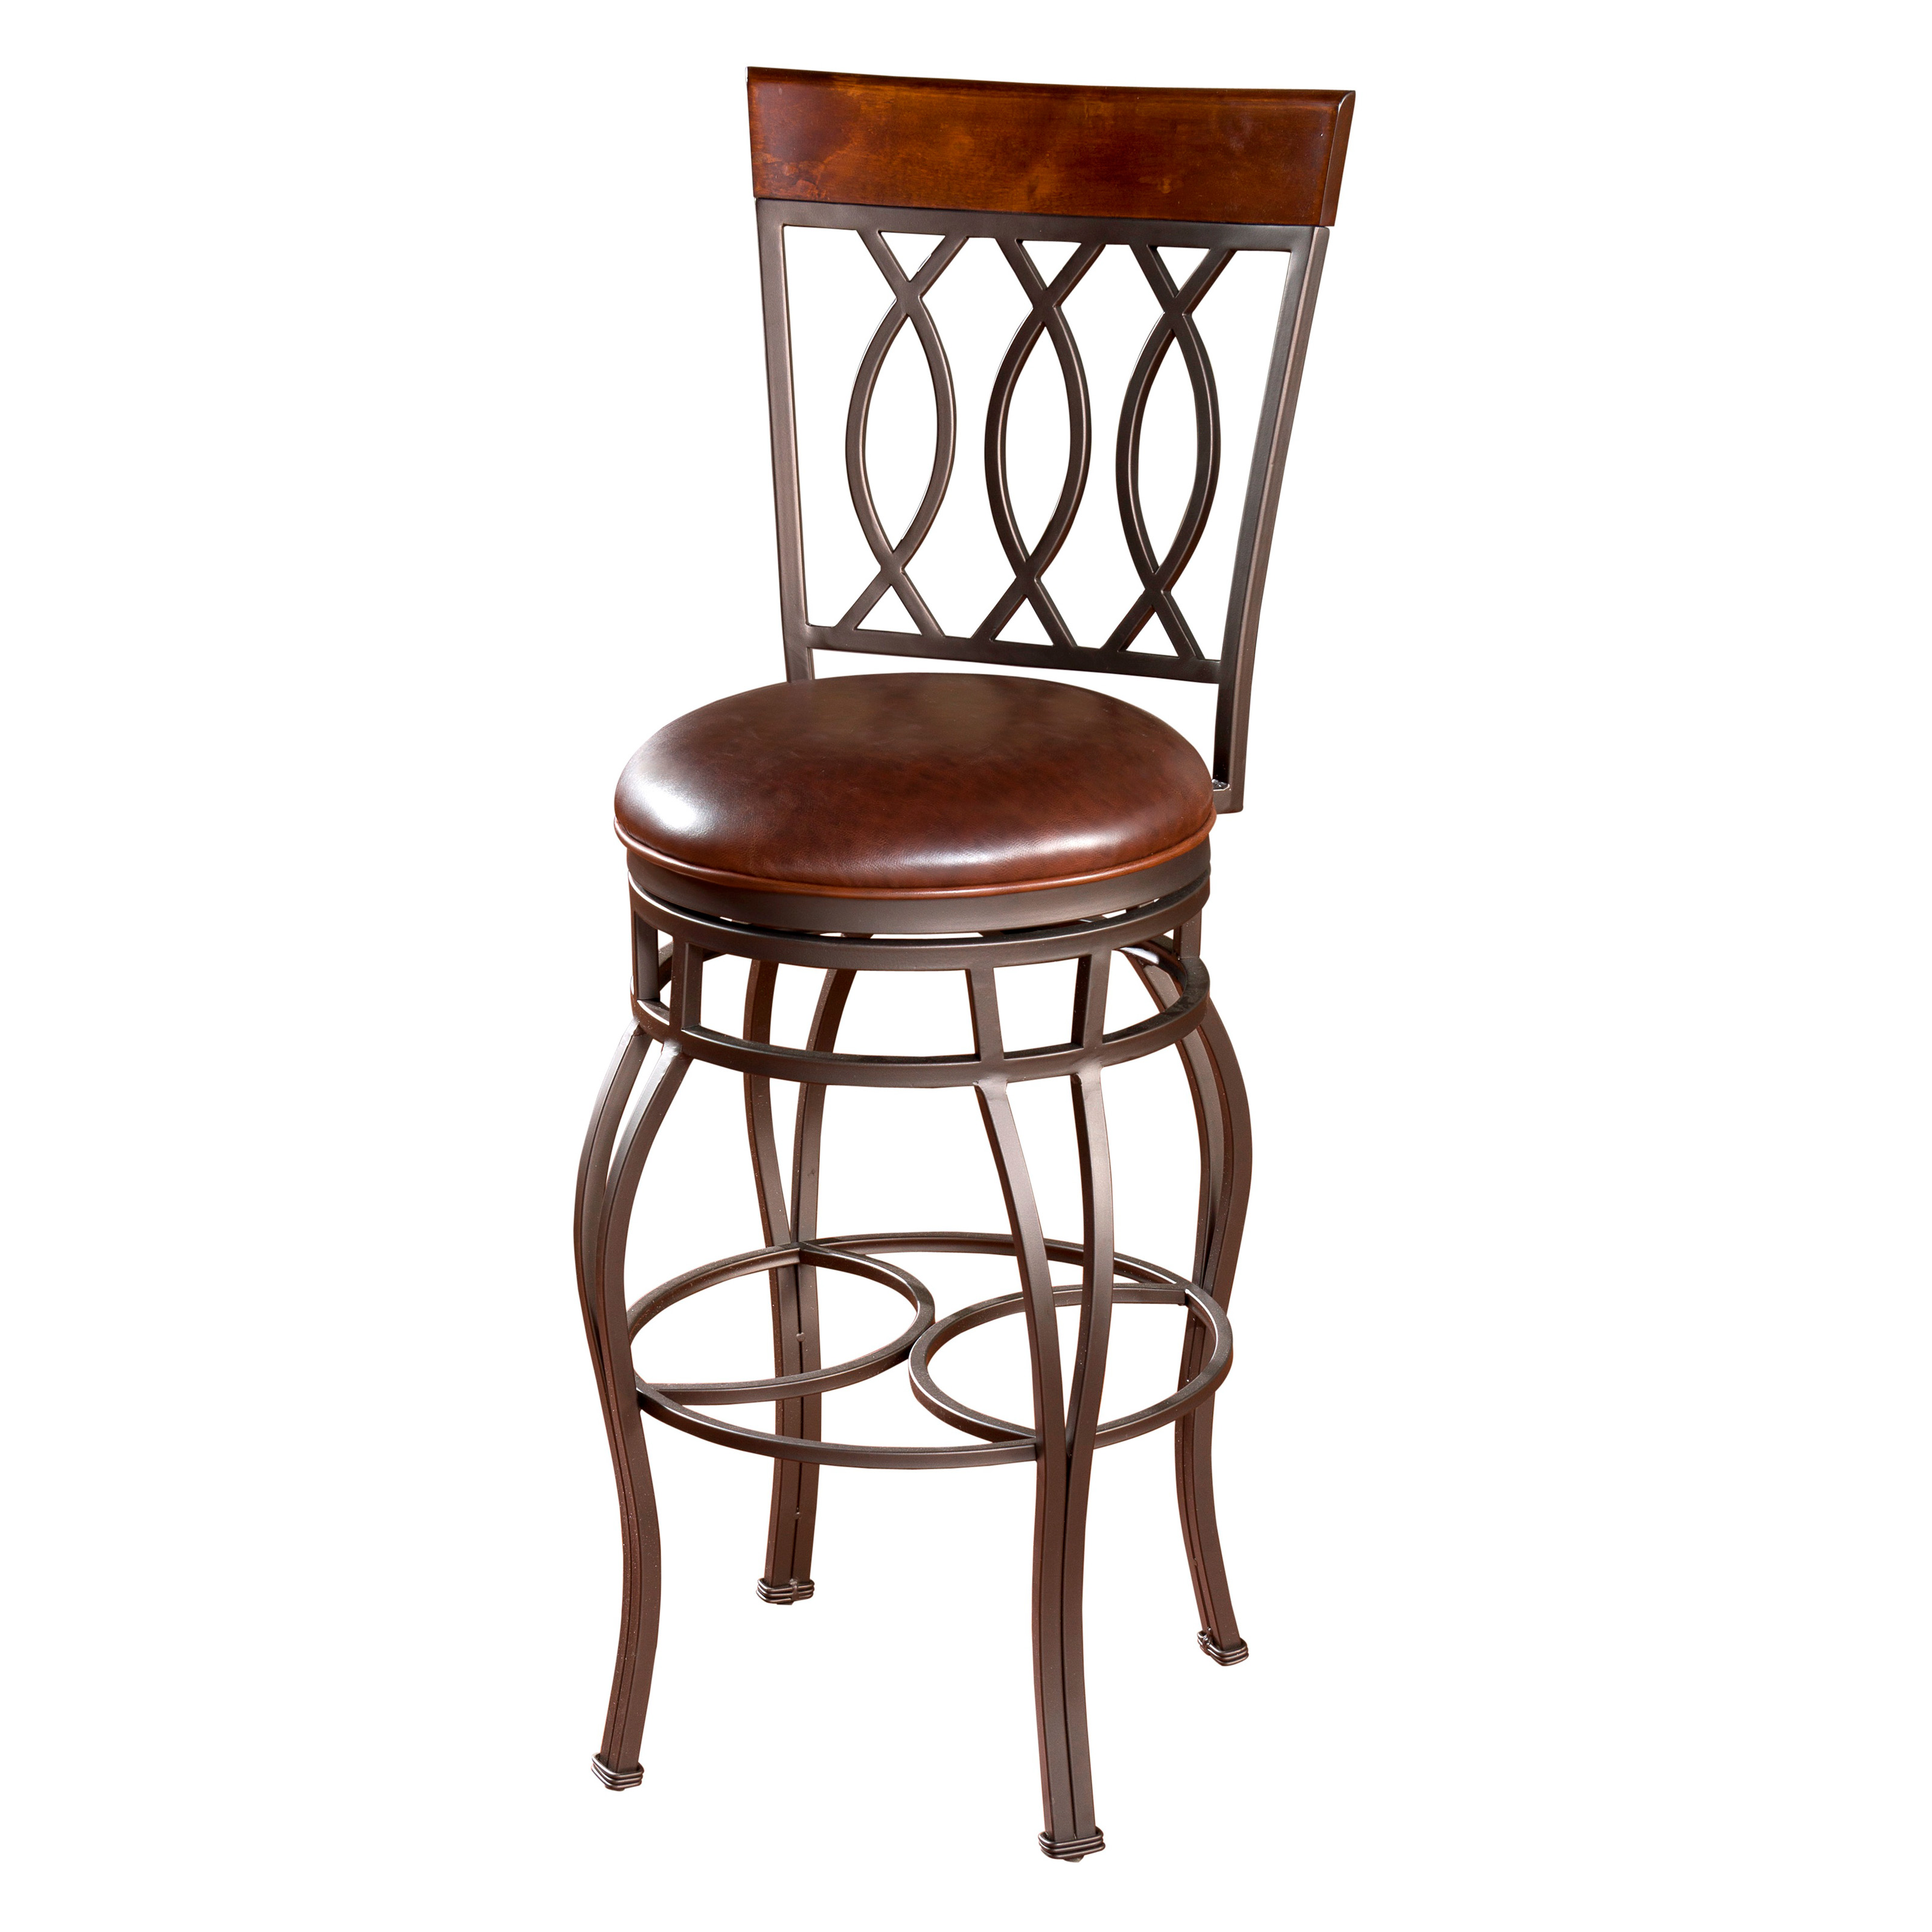 Ahb bella extra tall bar stool stools at hayneedle